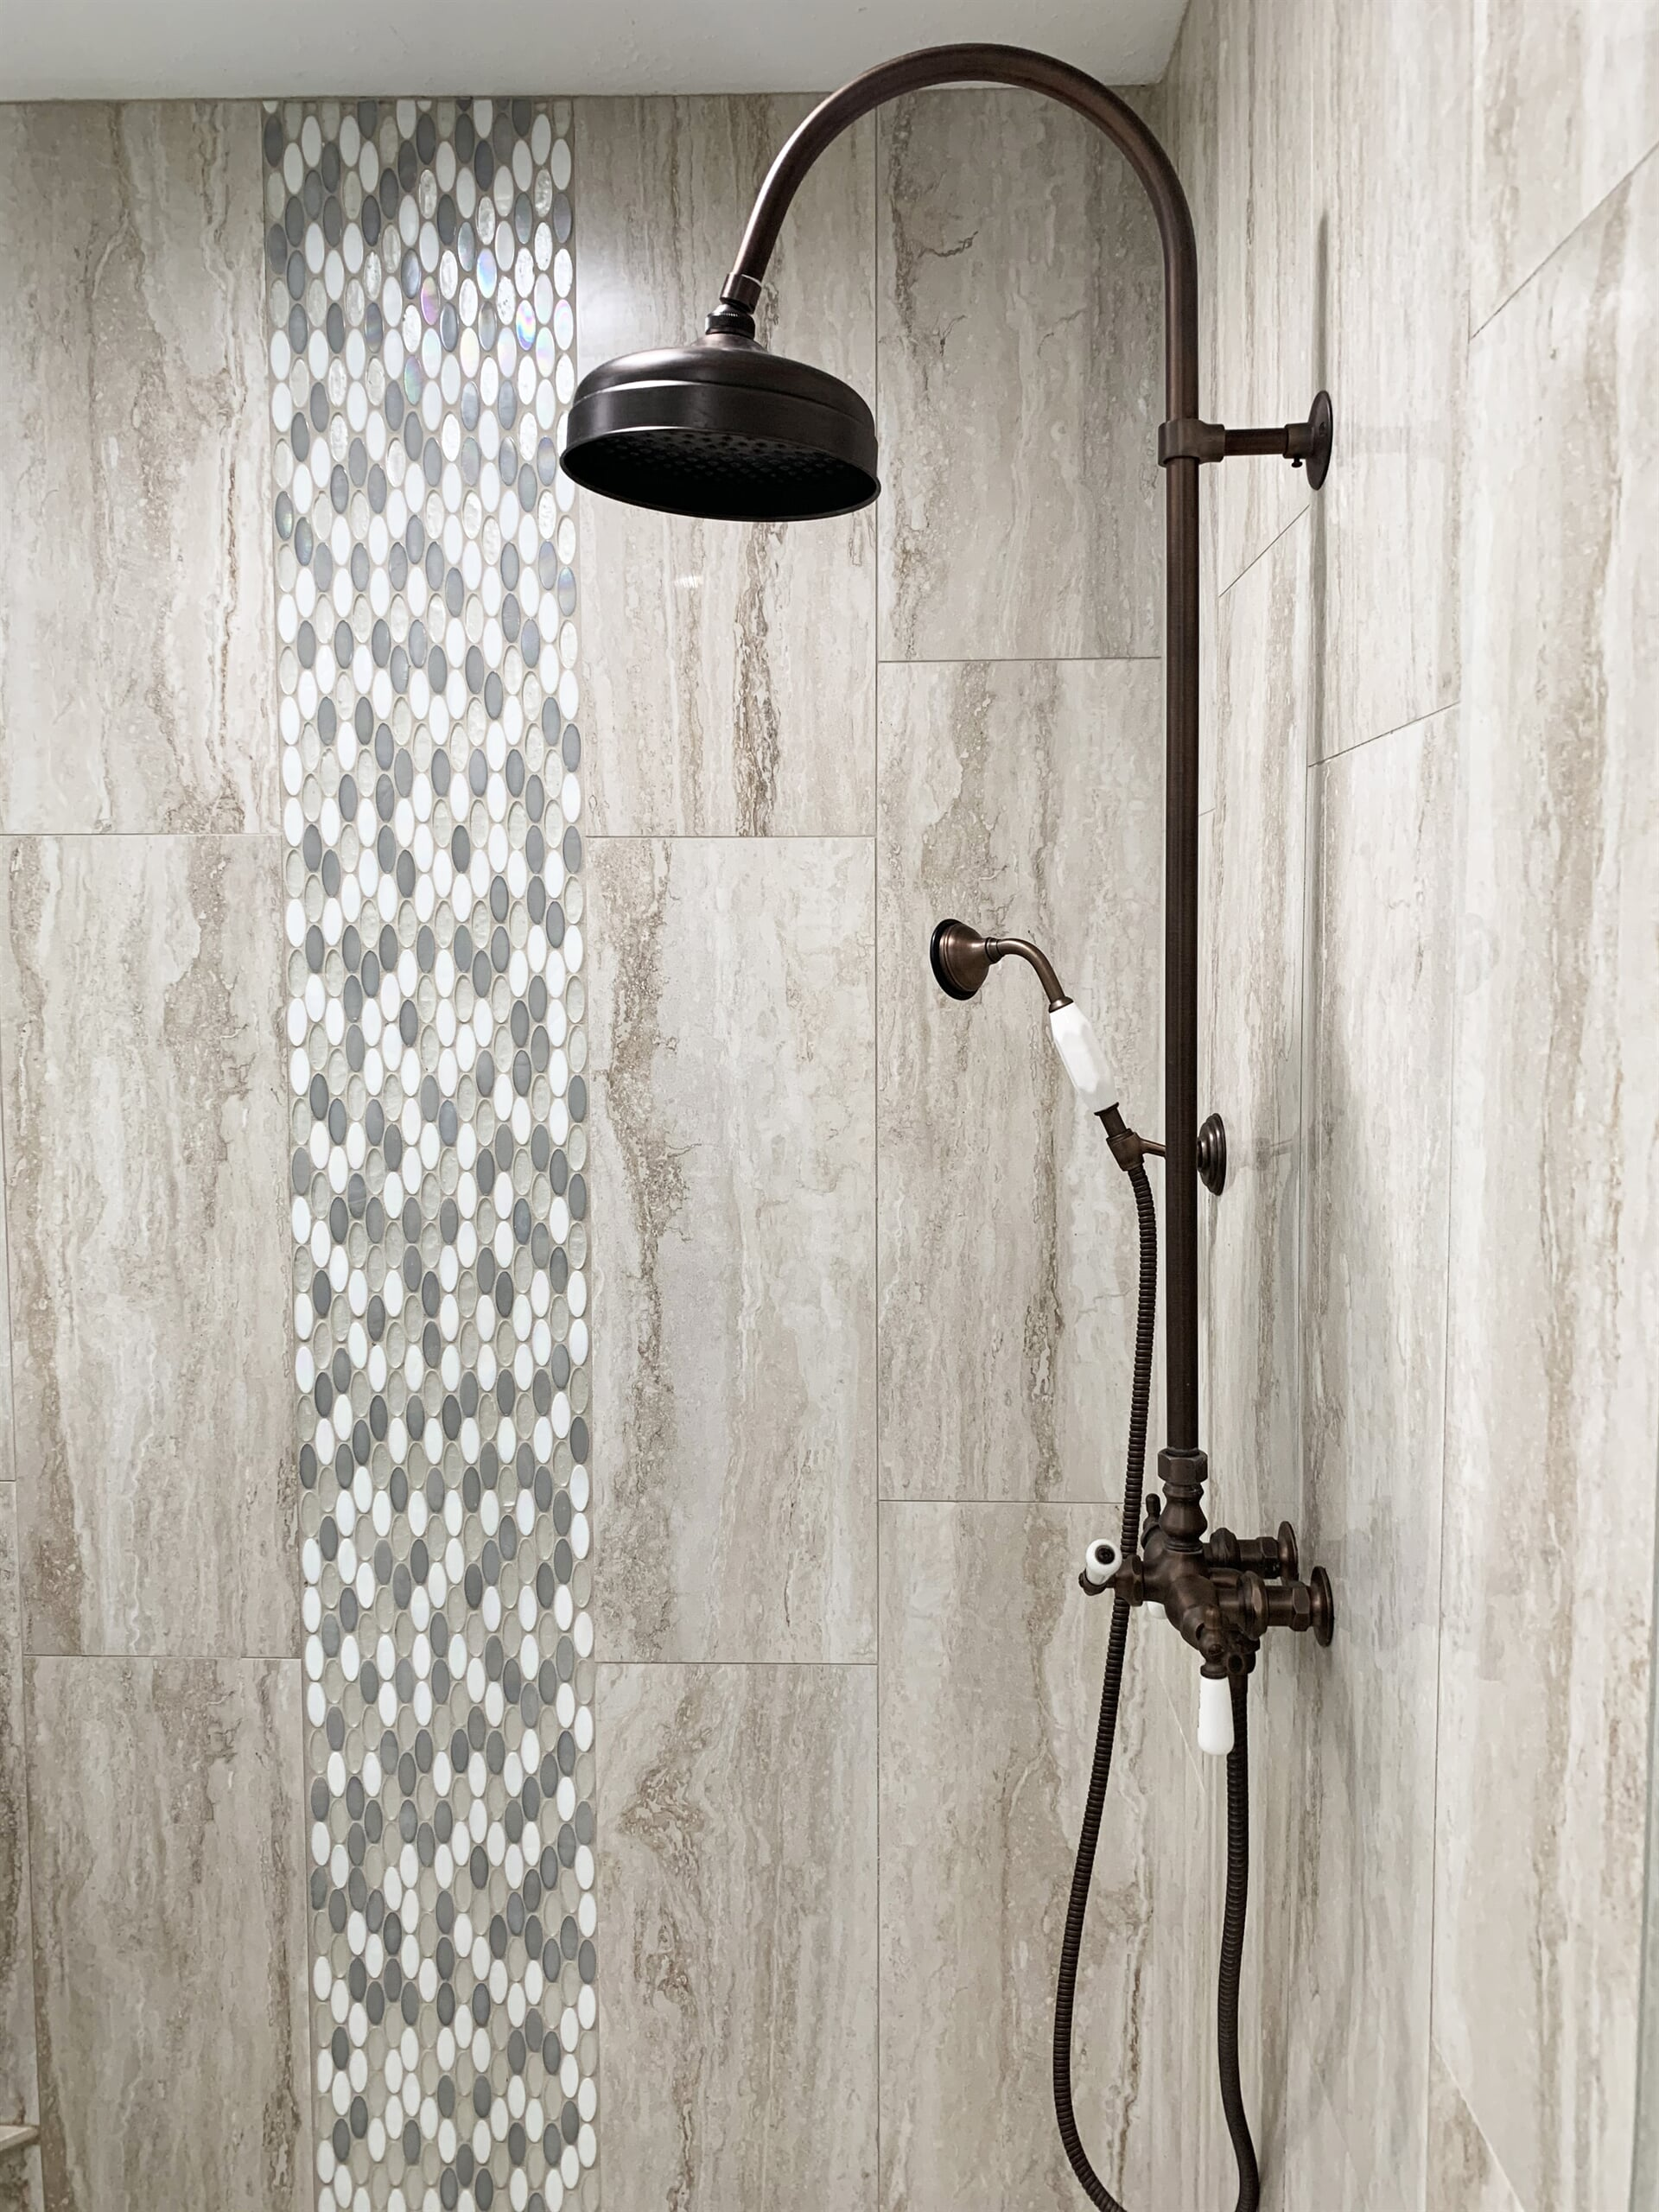 Glass tile shower accents in Vidor, TX from Odile's Fine Flooring & Design